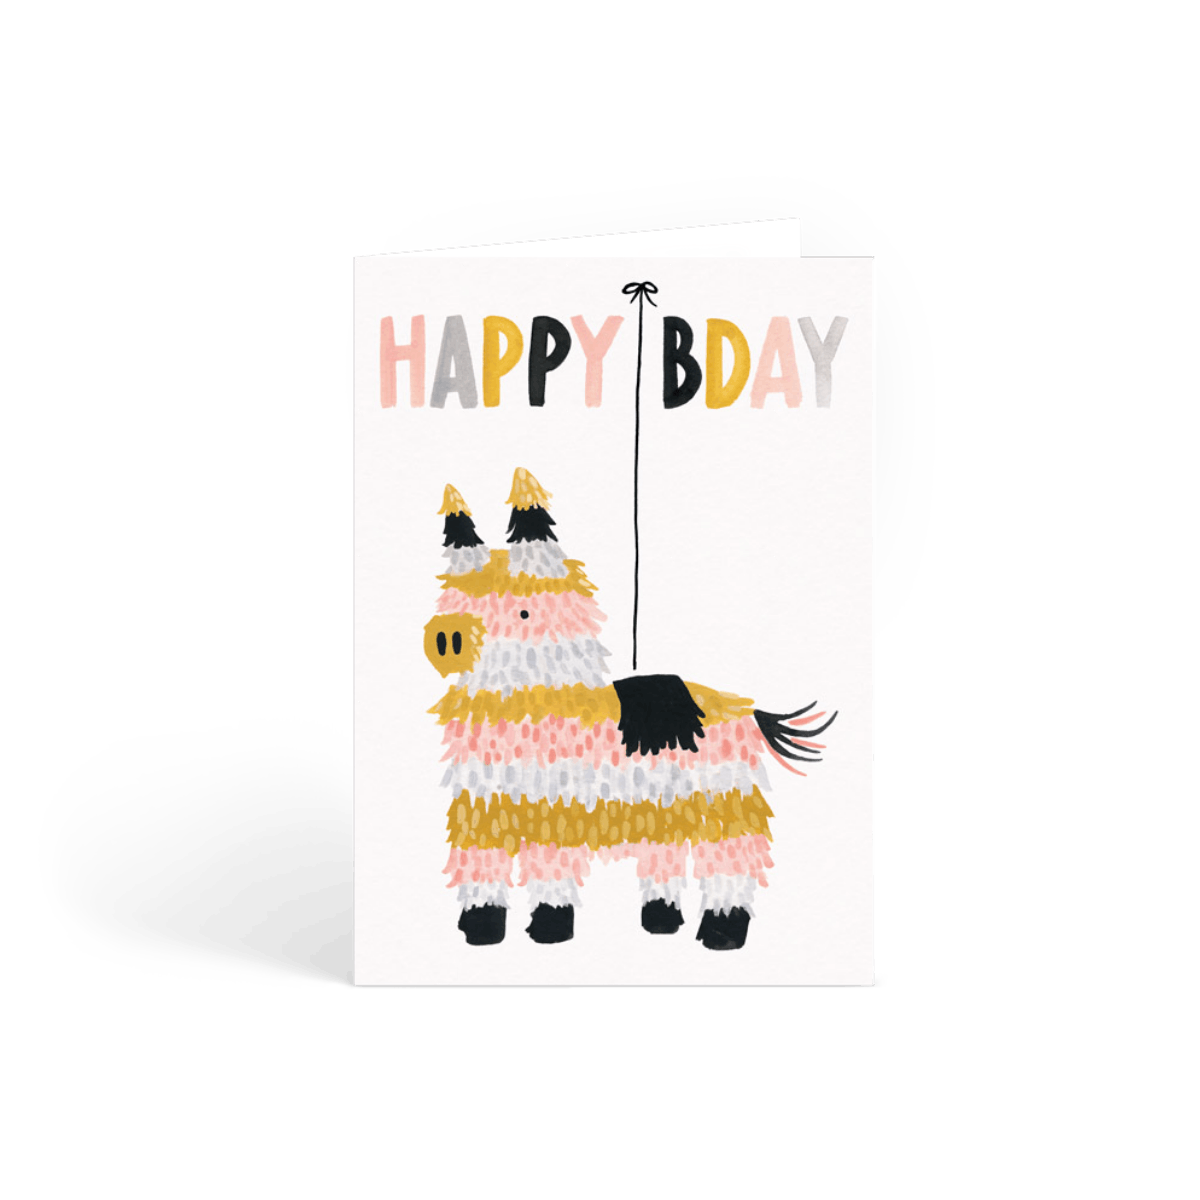 Https%3a%2f%2fwww.papier.com%2fproduct image%2f8179%2f2%2fbirthday pinata 2025 front 1465919174.png?ixlib=rb 1.1